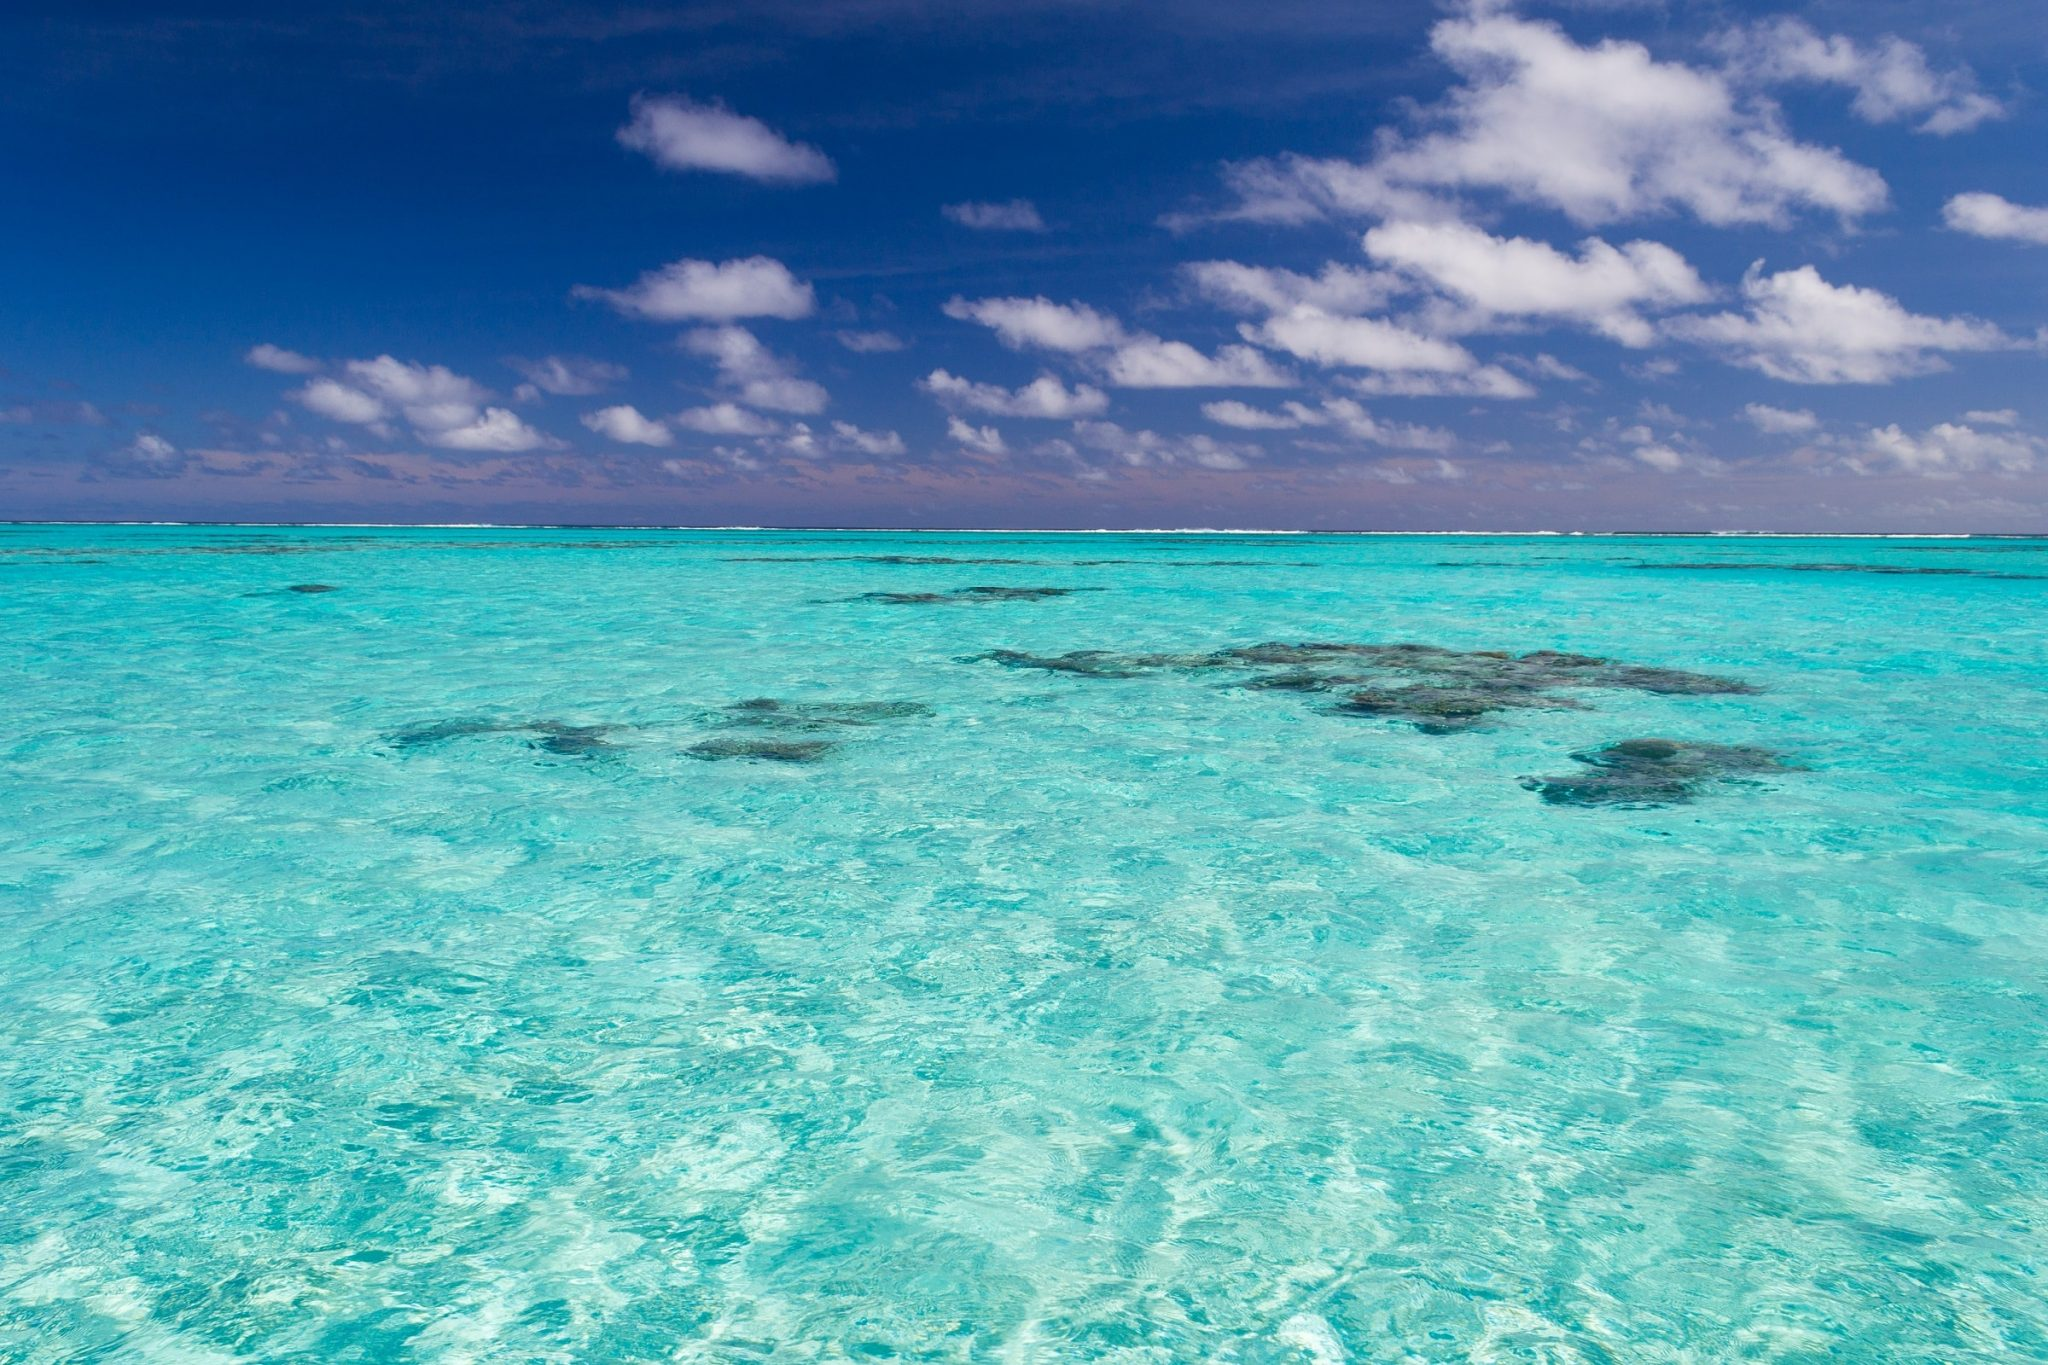 Turquoise Caribbean